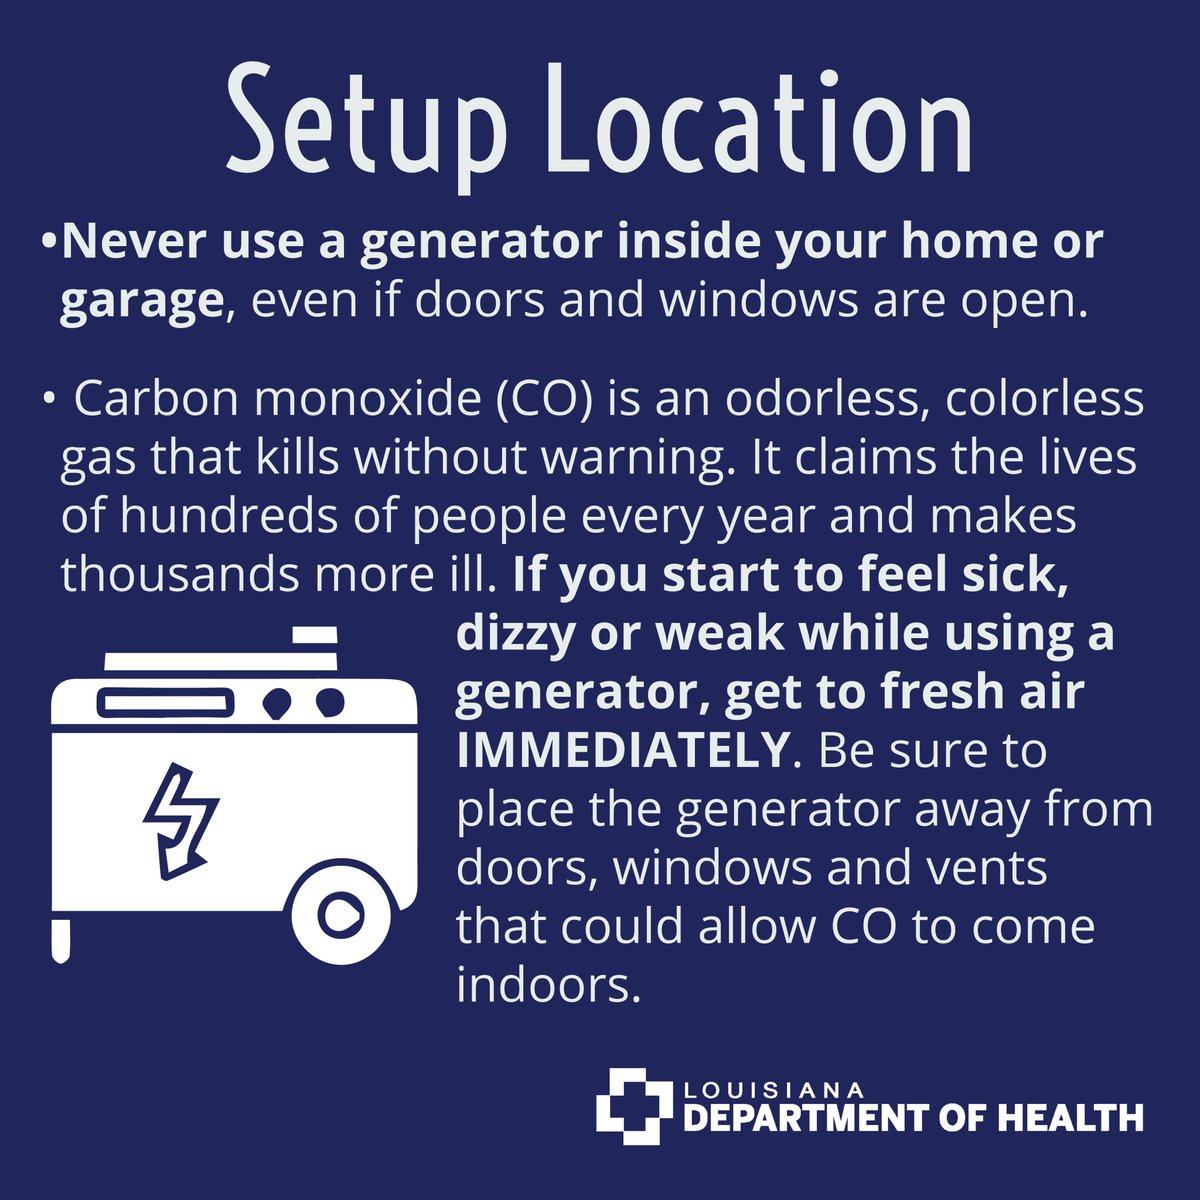 Hurricane Zeta has caused power outages around the state meaning many people are using generators to power their homes. Please remember to use them safely.